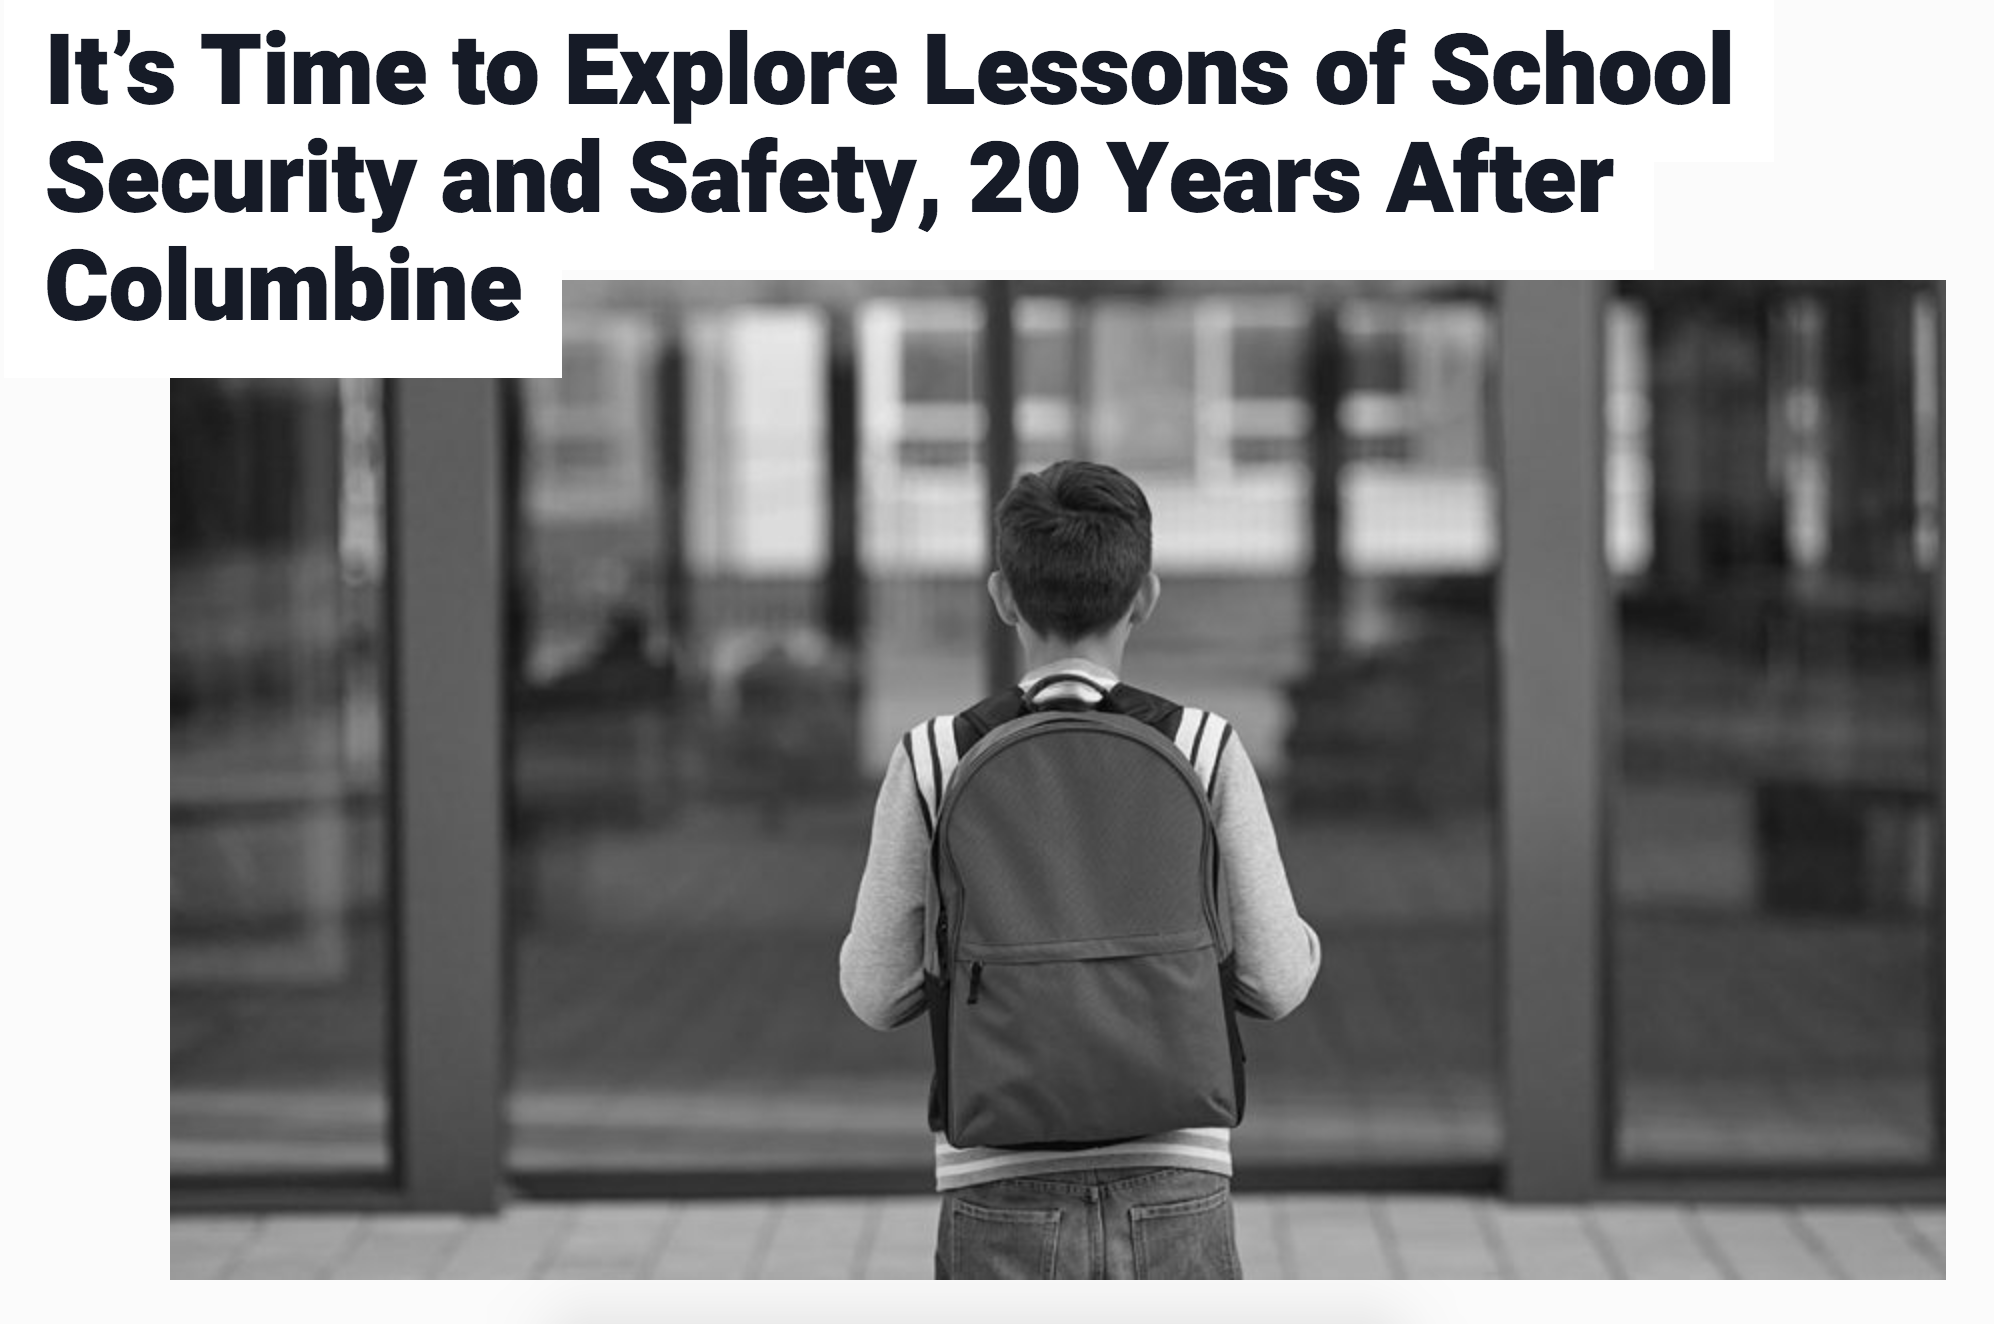 Guy Grace Shares Insights On School Safety In New Article